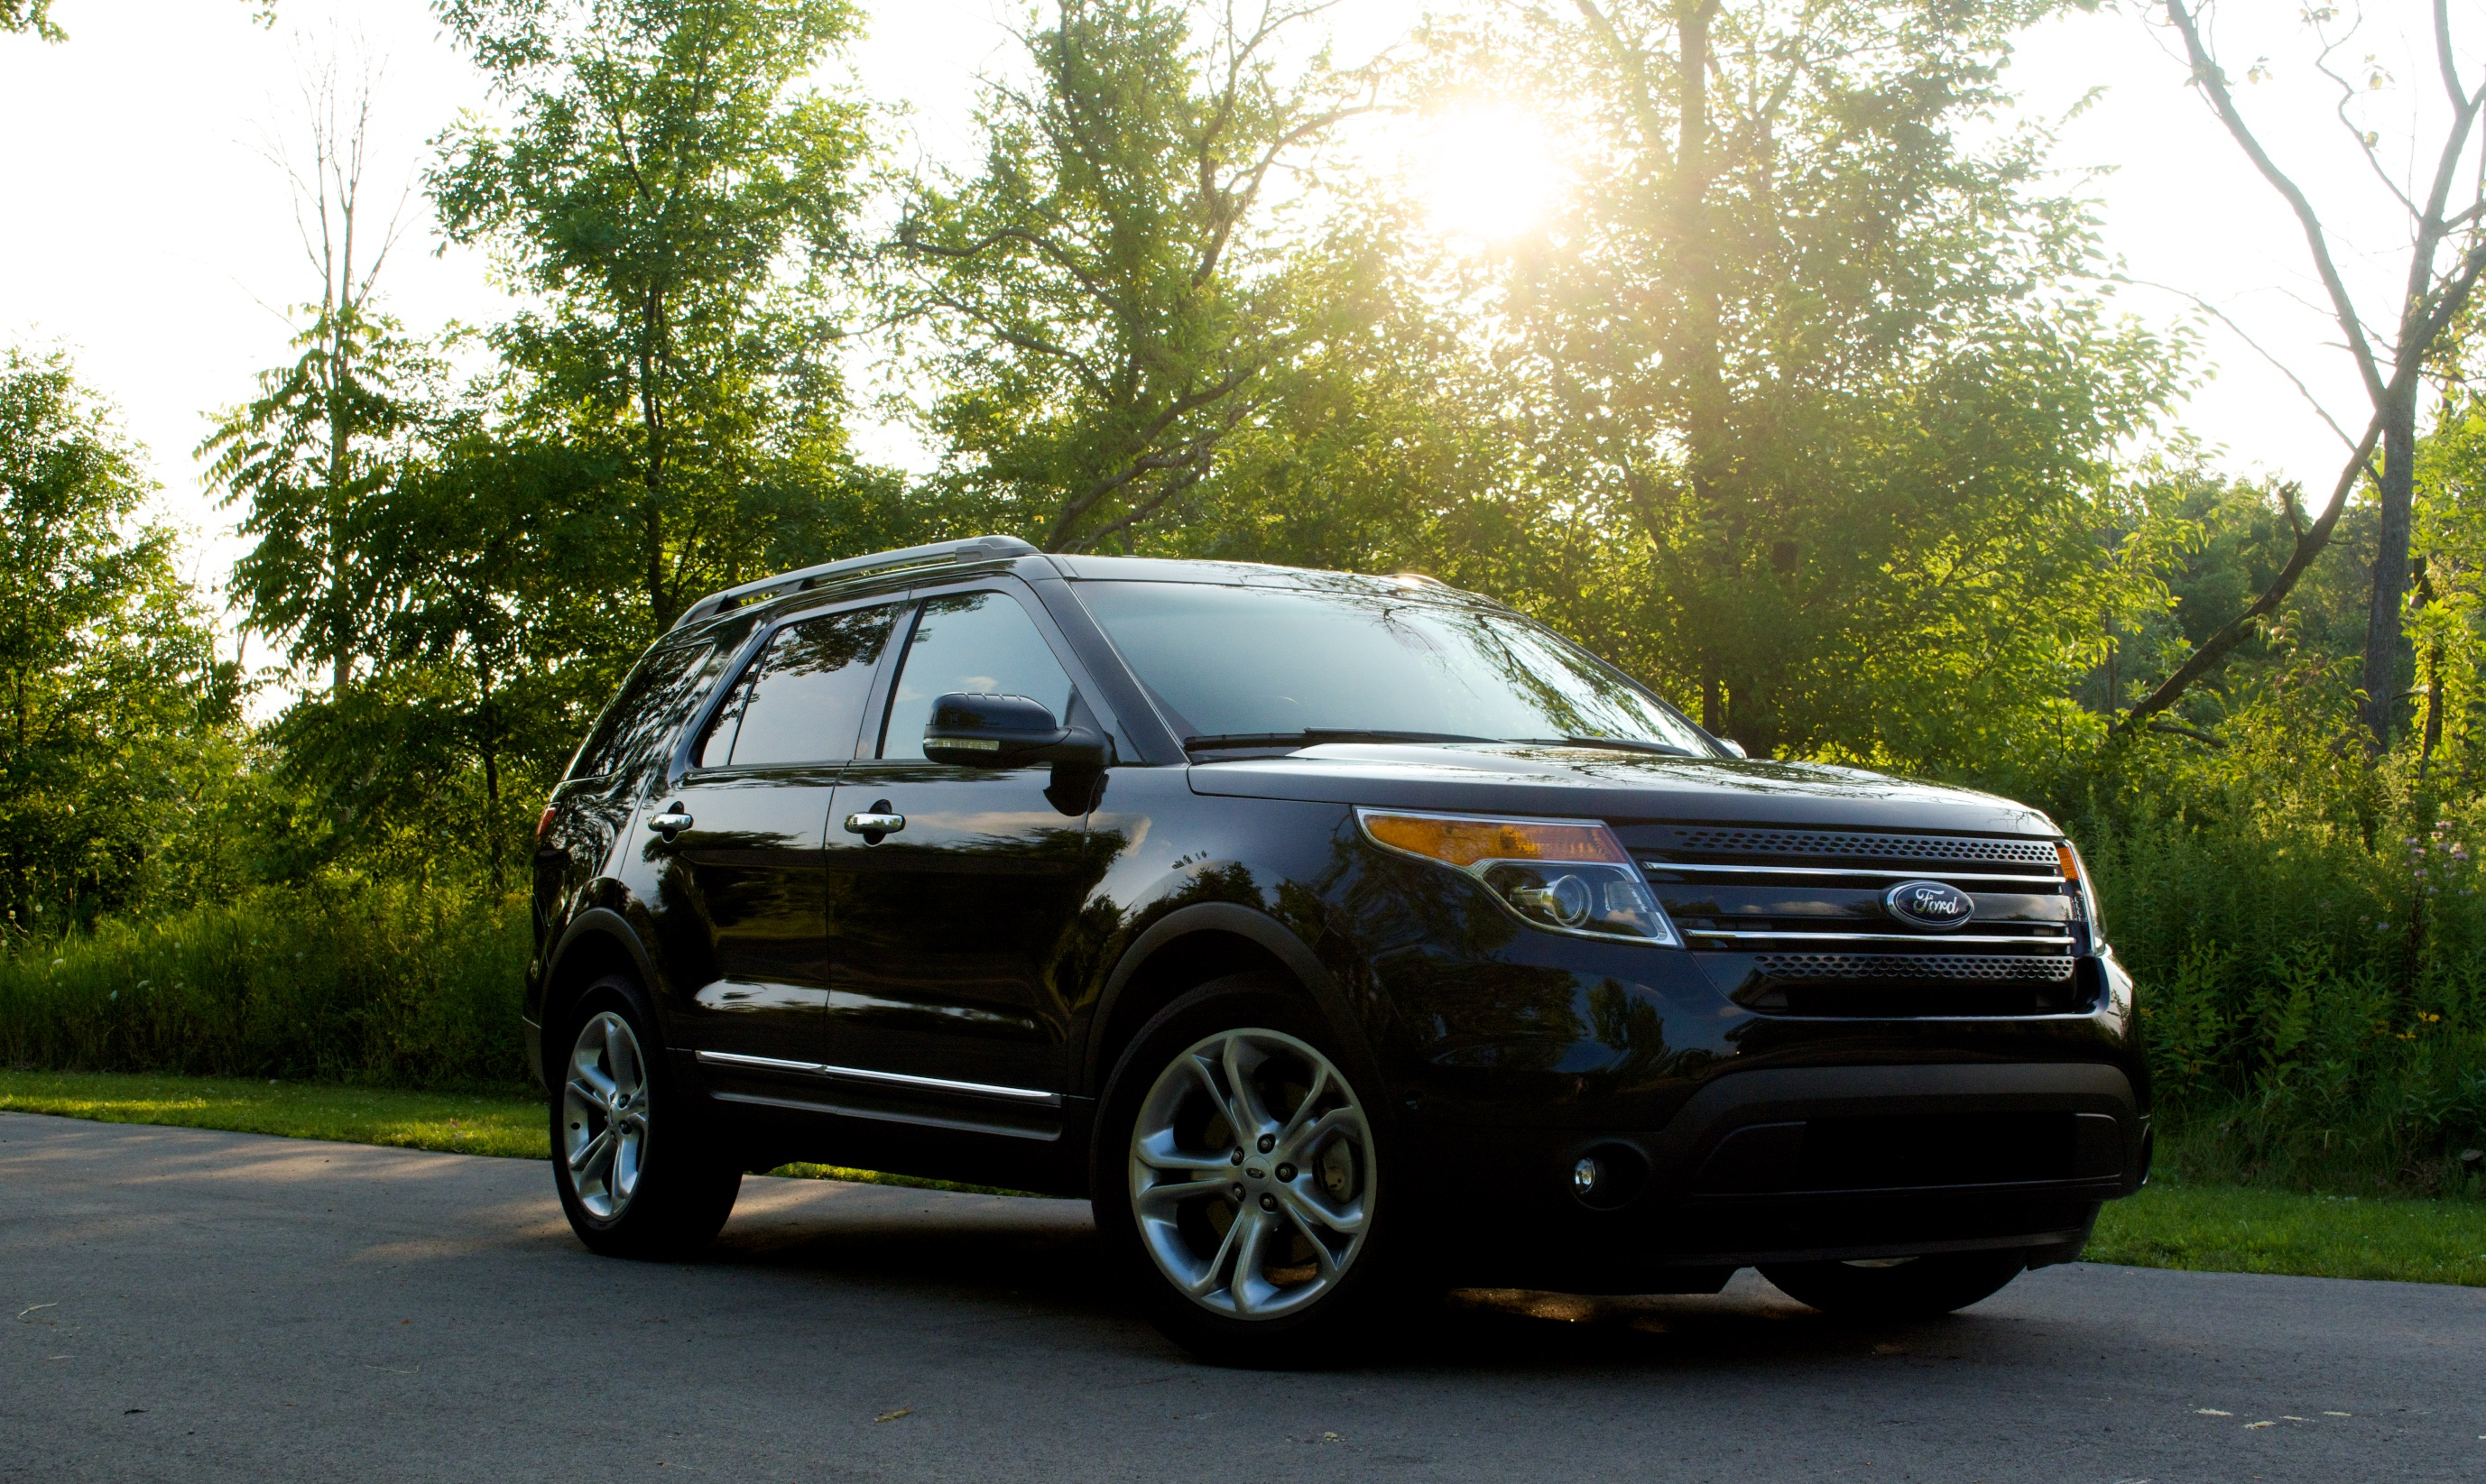 2014 ford explorer limited review motor review. Cars Review. Best American Auto & Cars Review